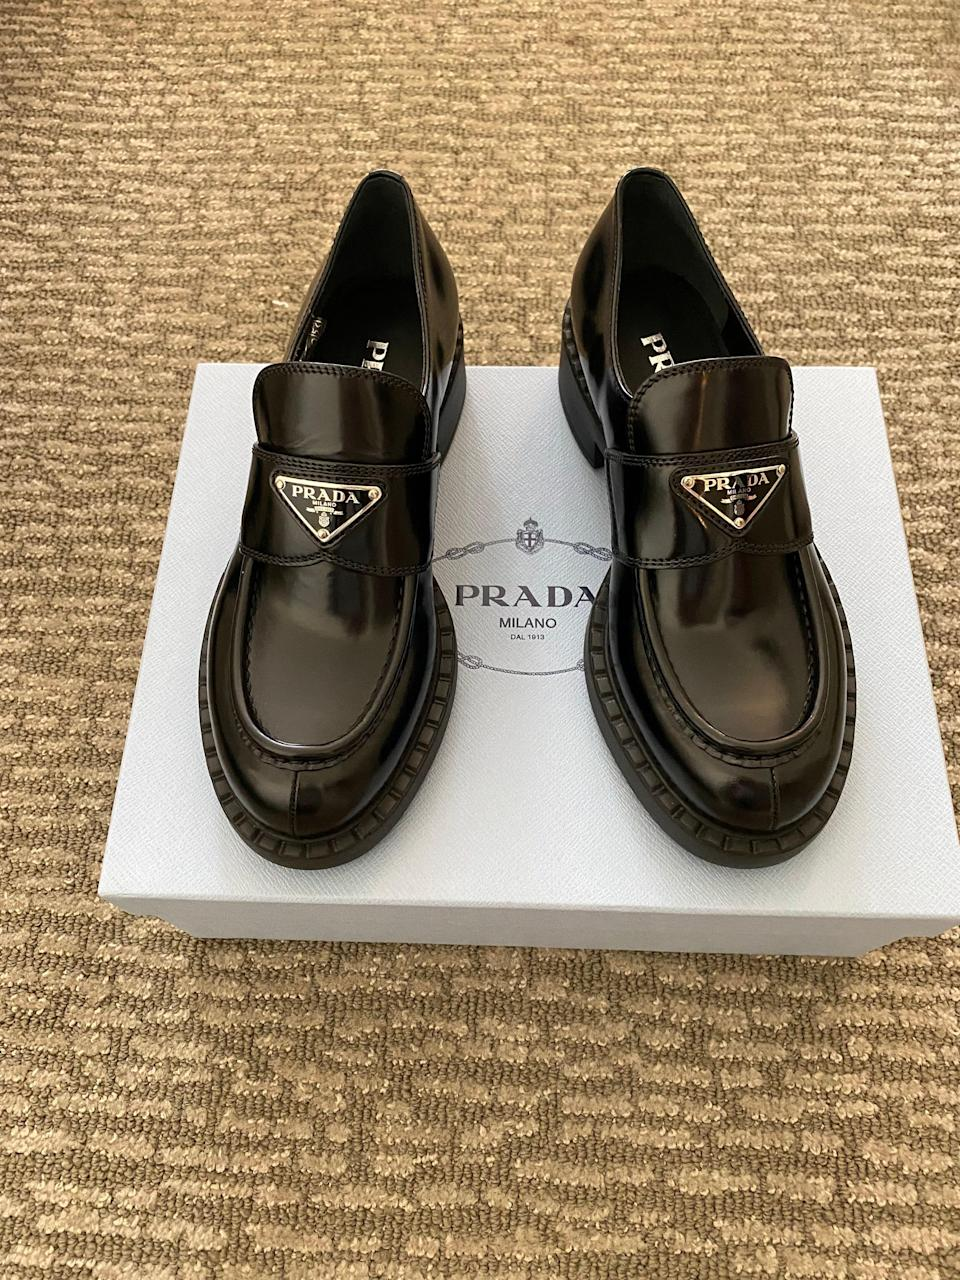 I fell in love with these Prada shoes as soon as I saw them! Best part about them… they're not heels!